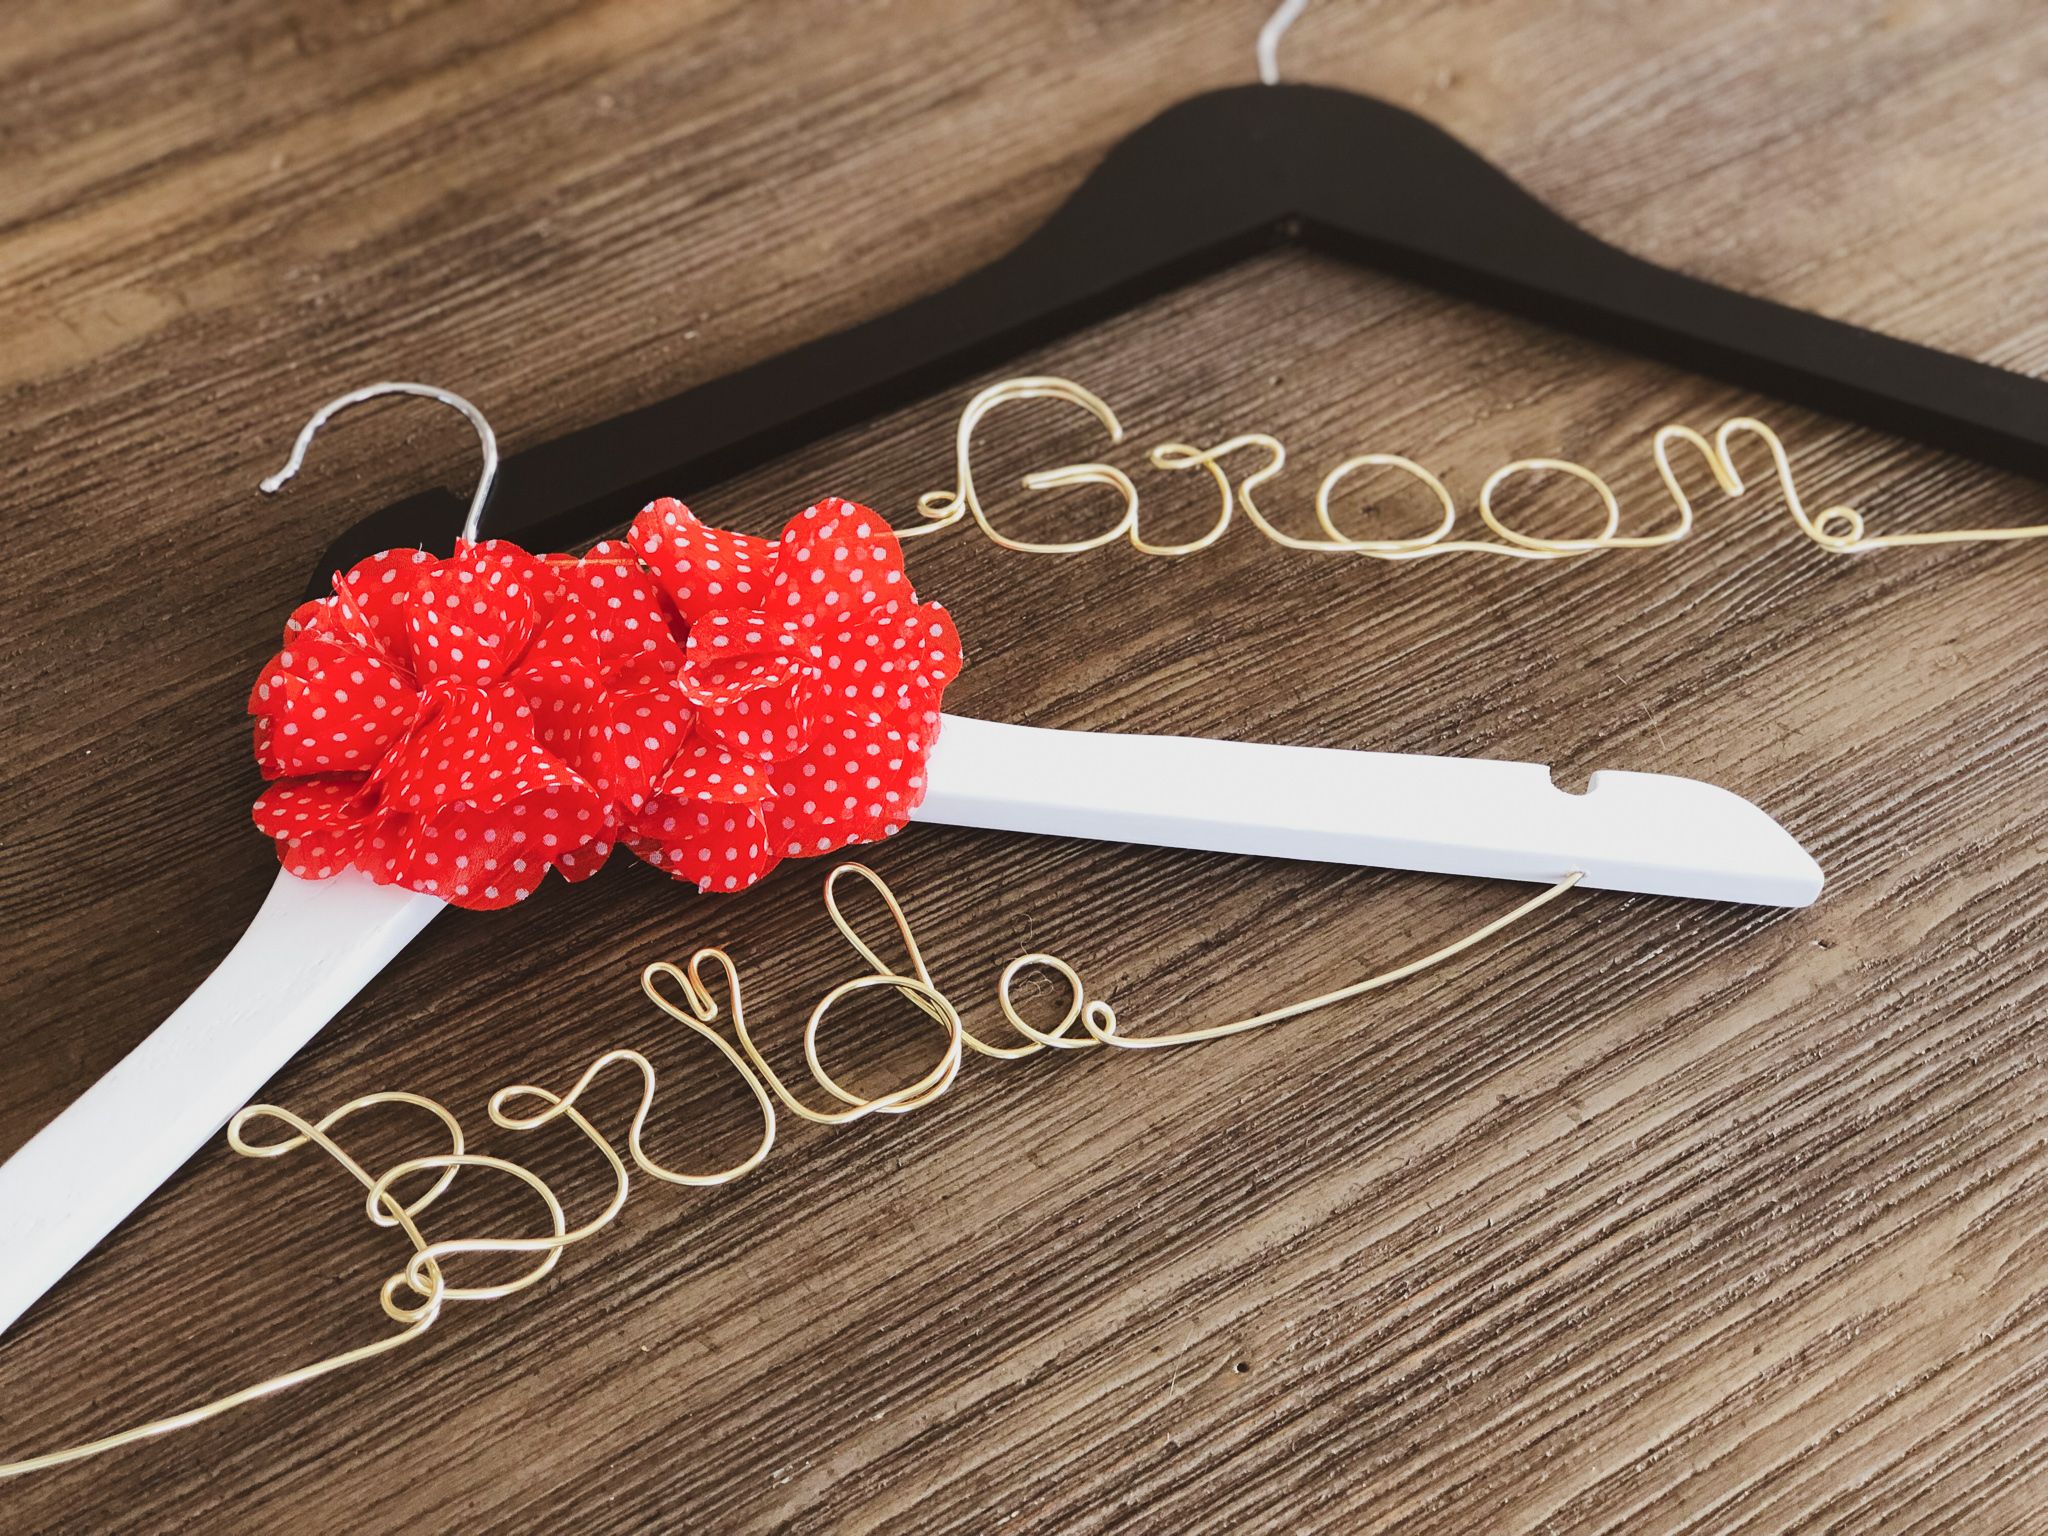 White Bride hanger with 2 Red and White Polkadot Flowers and Gold Wire, and Black Groom Hanger with Gold Wire